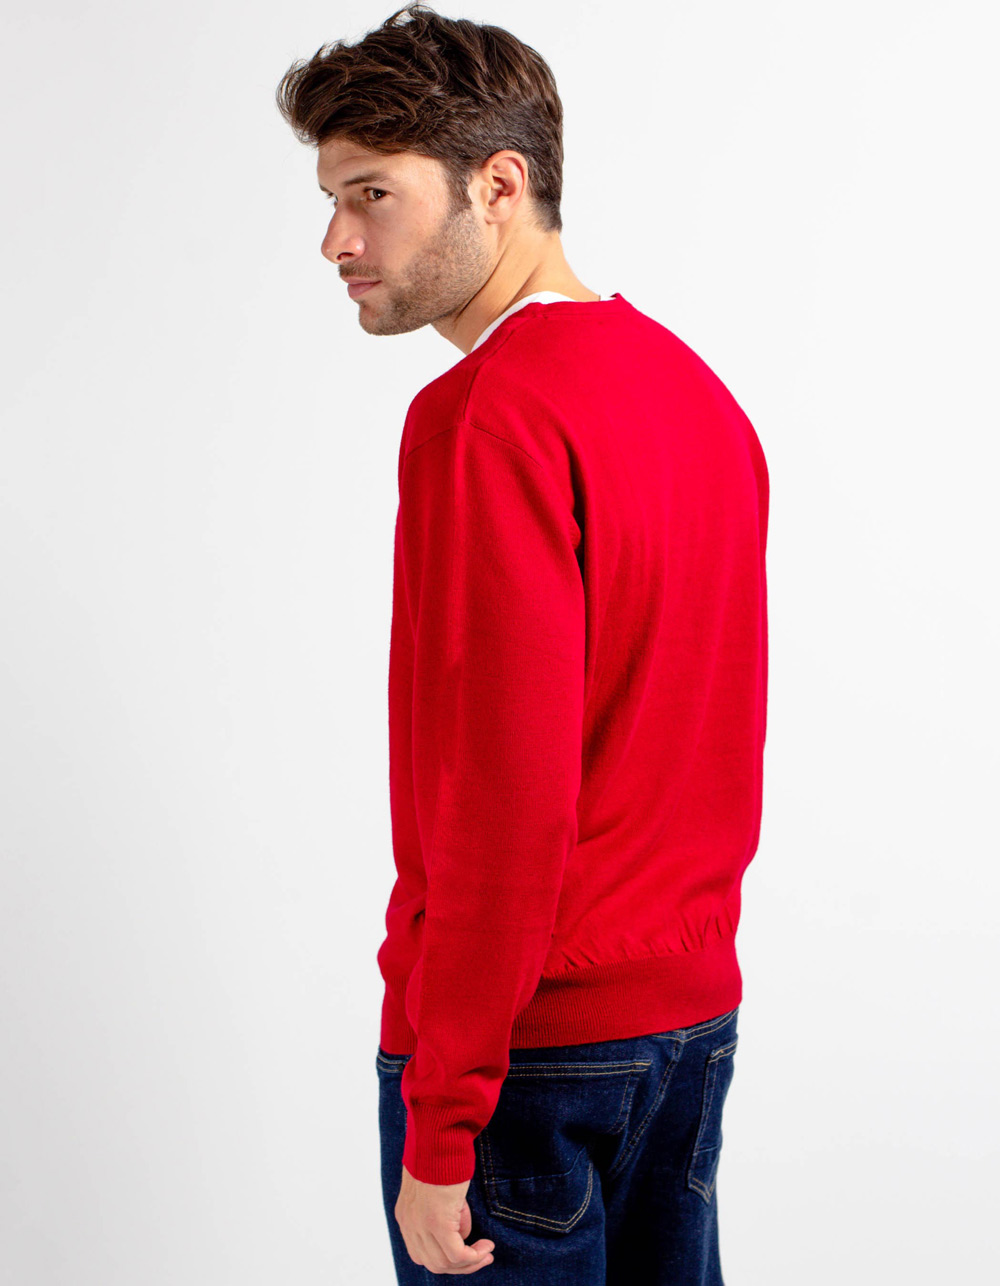 Jersey de cuello pico rojo - Backside